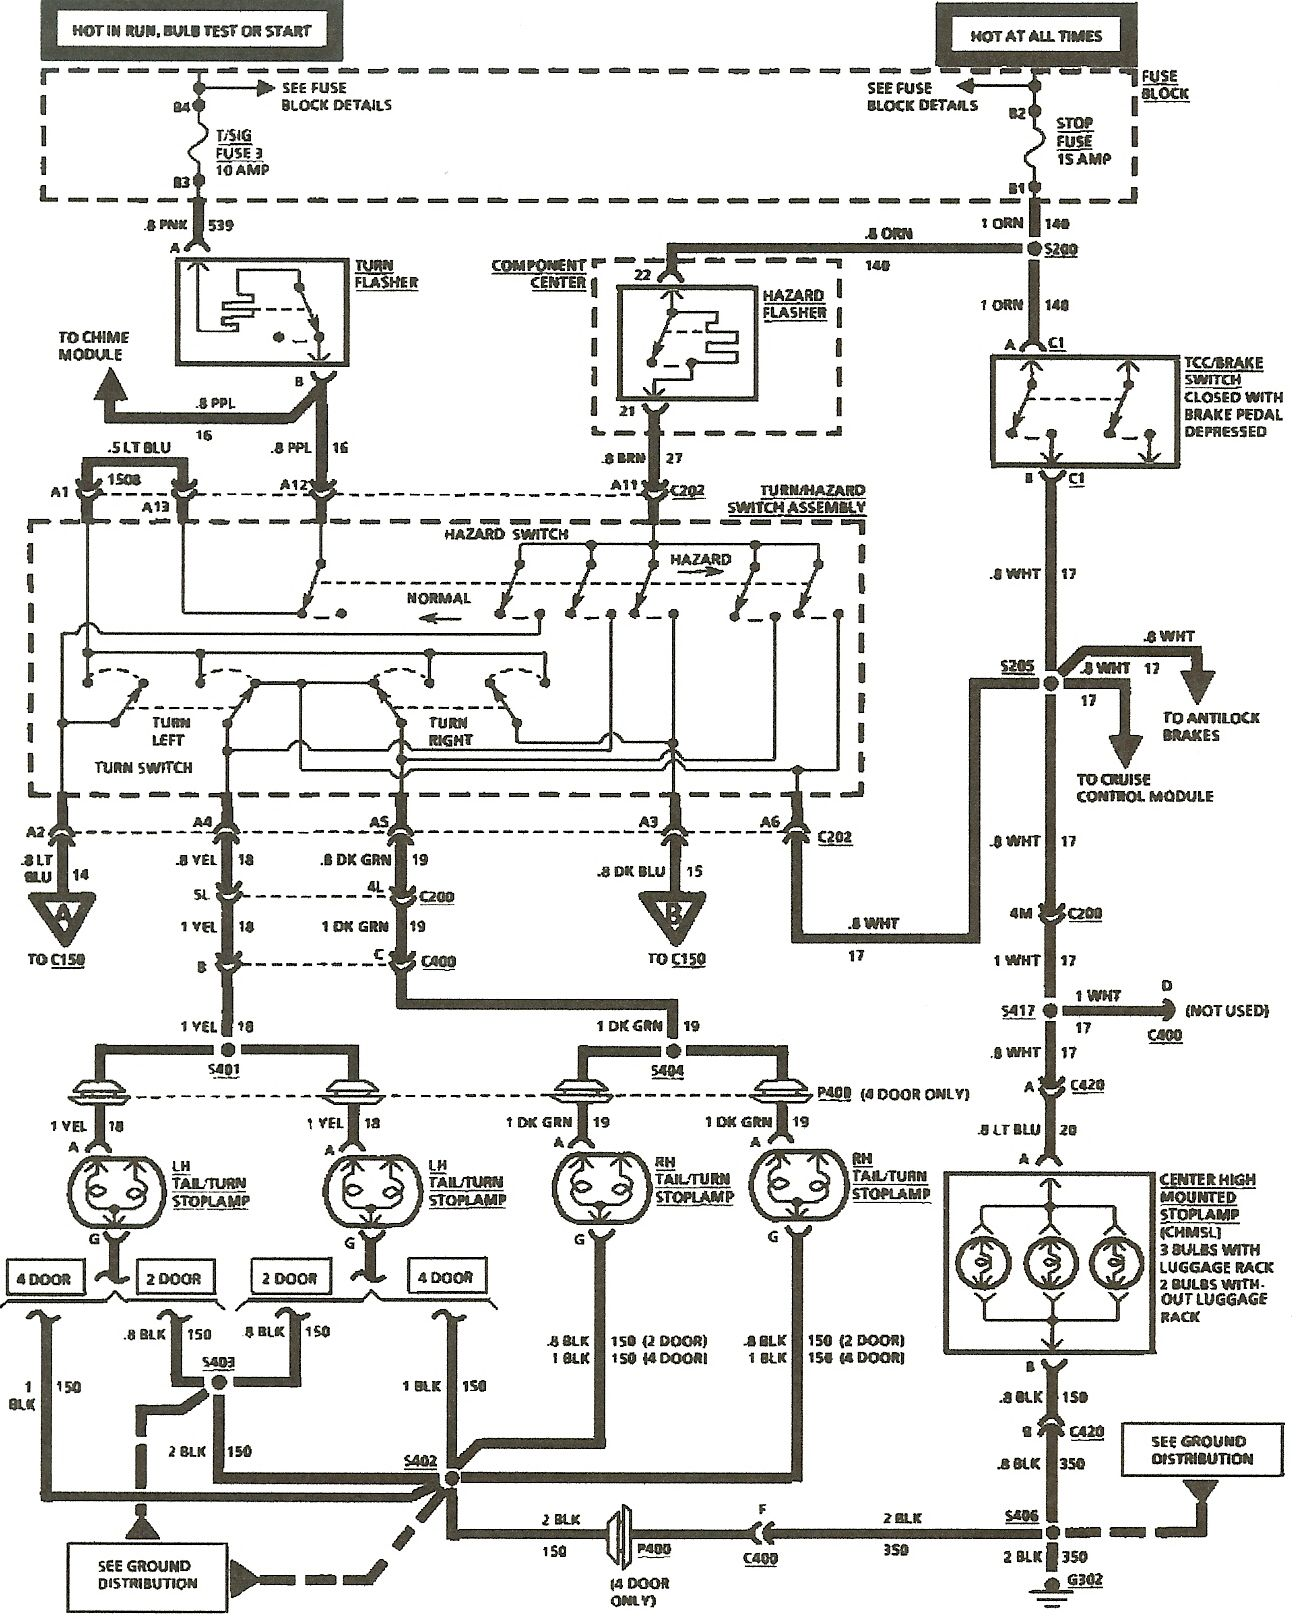 everlasting turn signal wiring diagram wiring library 8 wire turn signal wiring diagram everlasting turn signal [ 1297 x 1623 Pixel ]